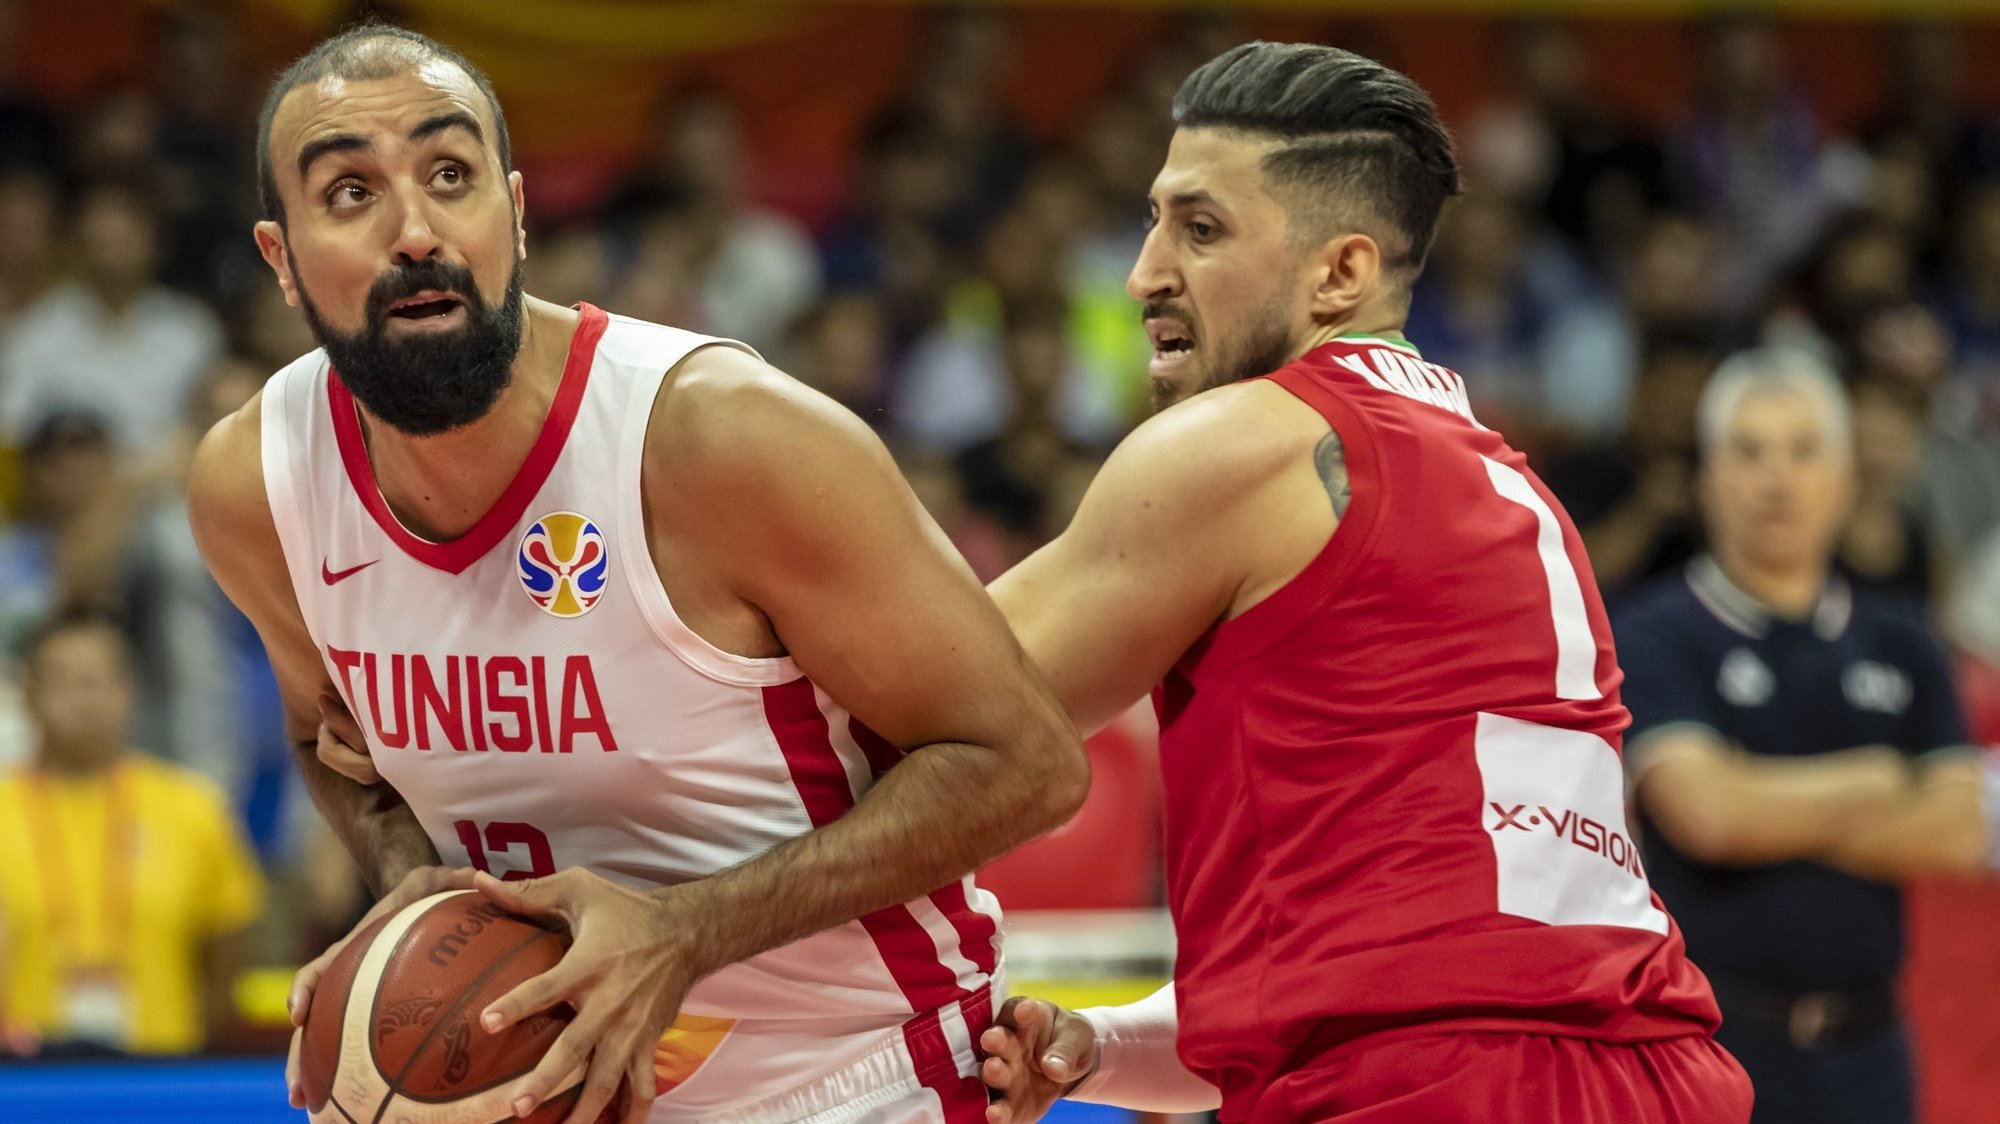 epa07812130 Makram Ben Romdhane of Tunisia (L) in action against Mohammad Hassanzadeh of Iran (R) during the FIBA Basketball World Cup 2019 match between Tunisia and Iran in Guangzhou, China, 02 September 2019.  EPA/ALEX PLAVEVSKI